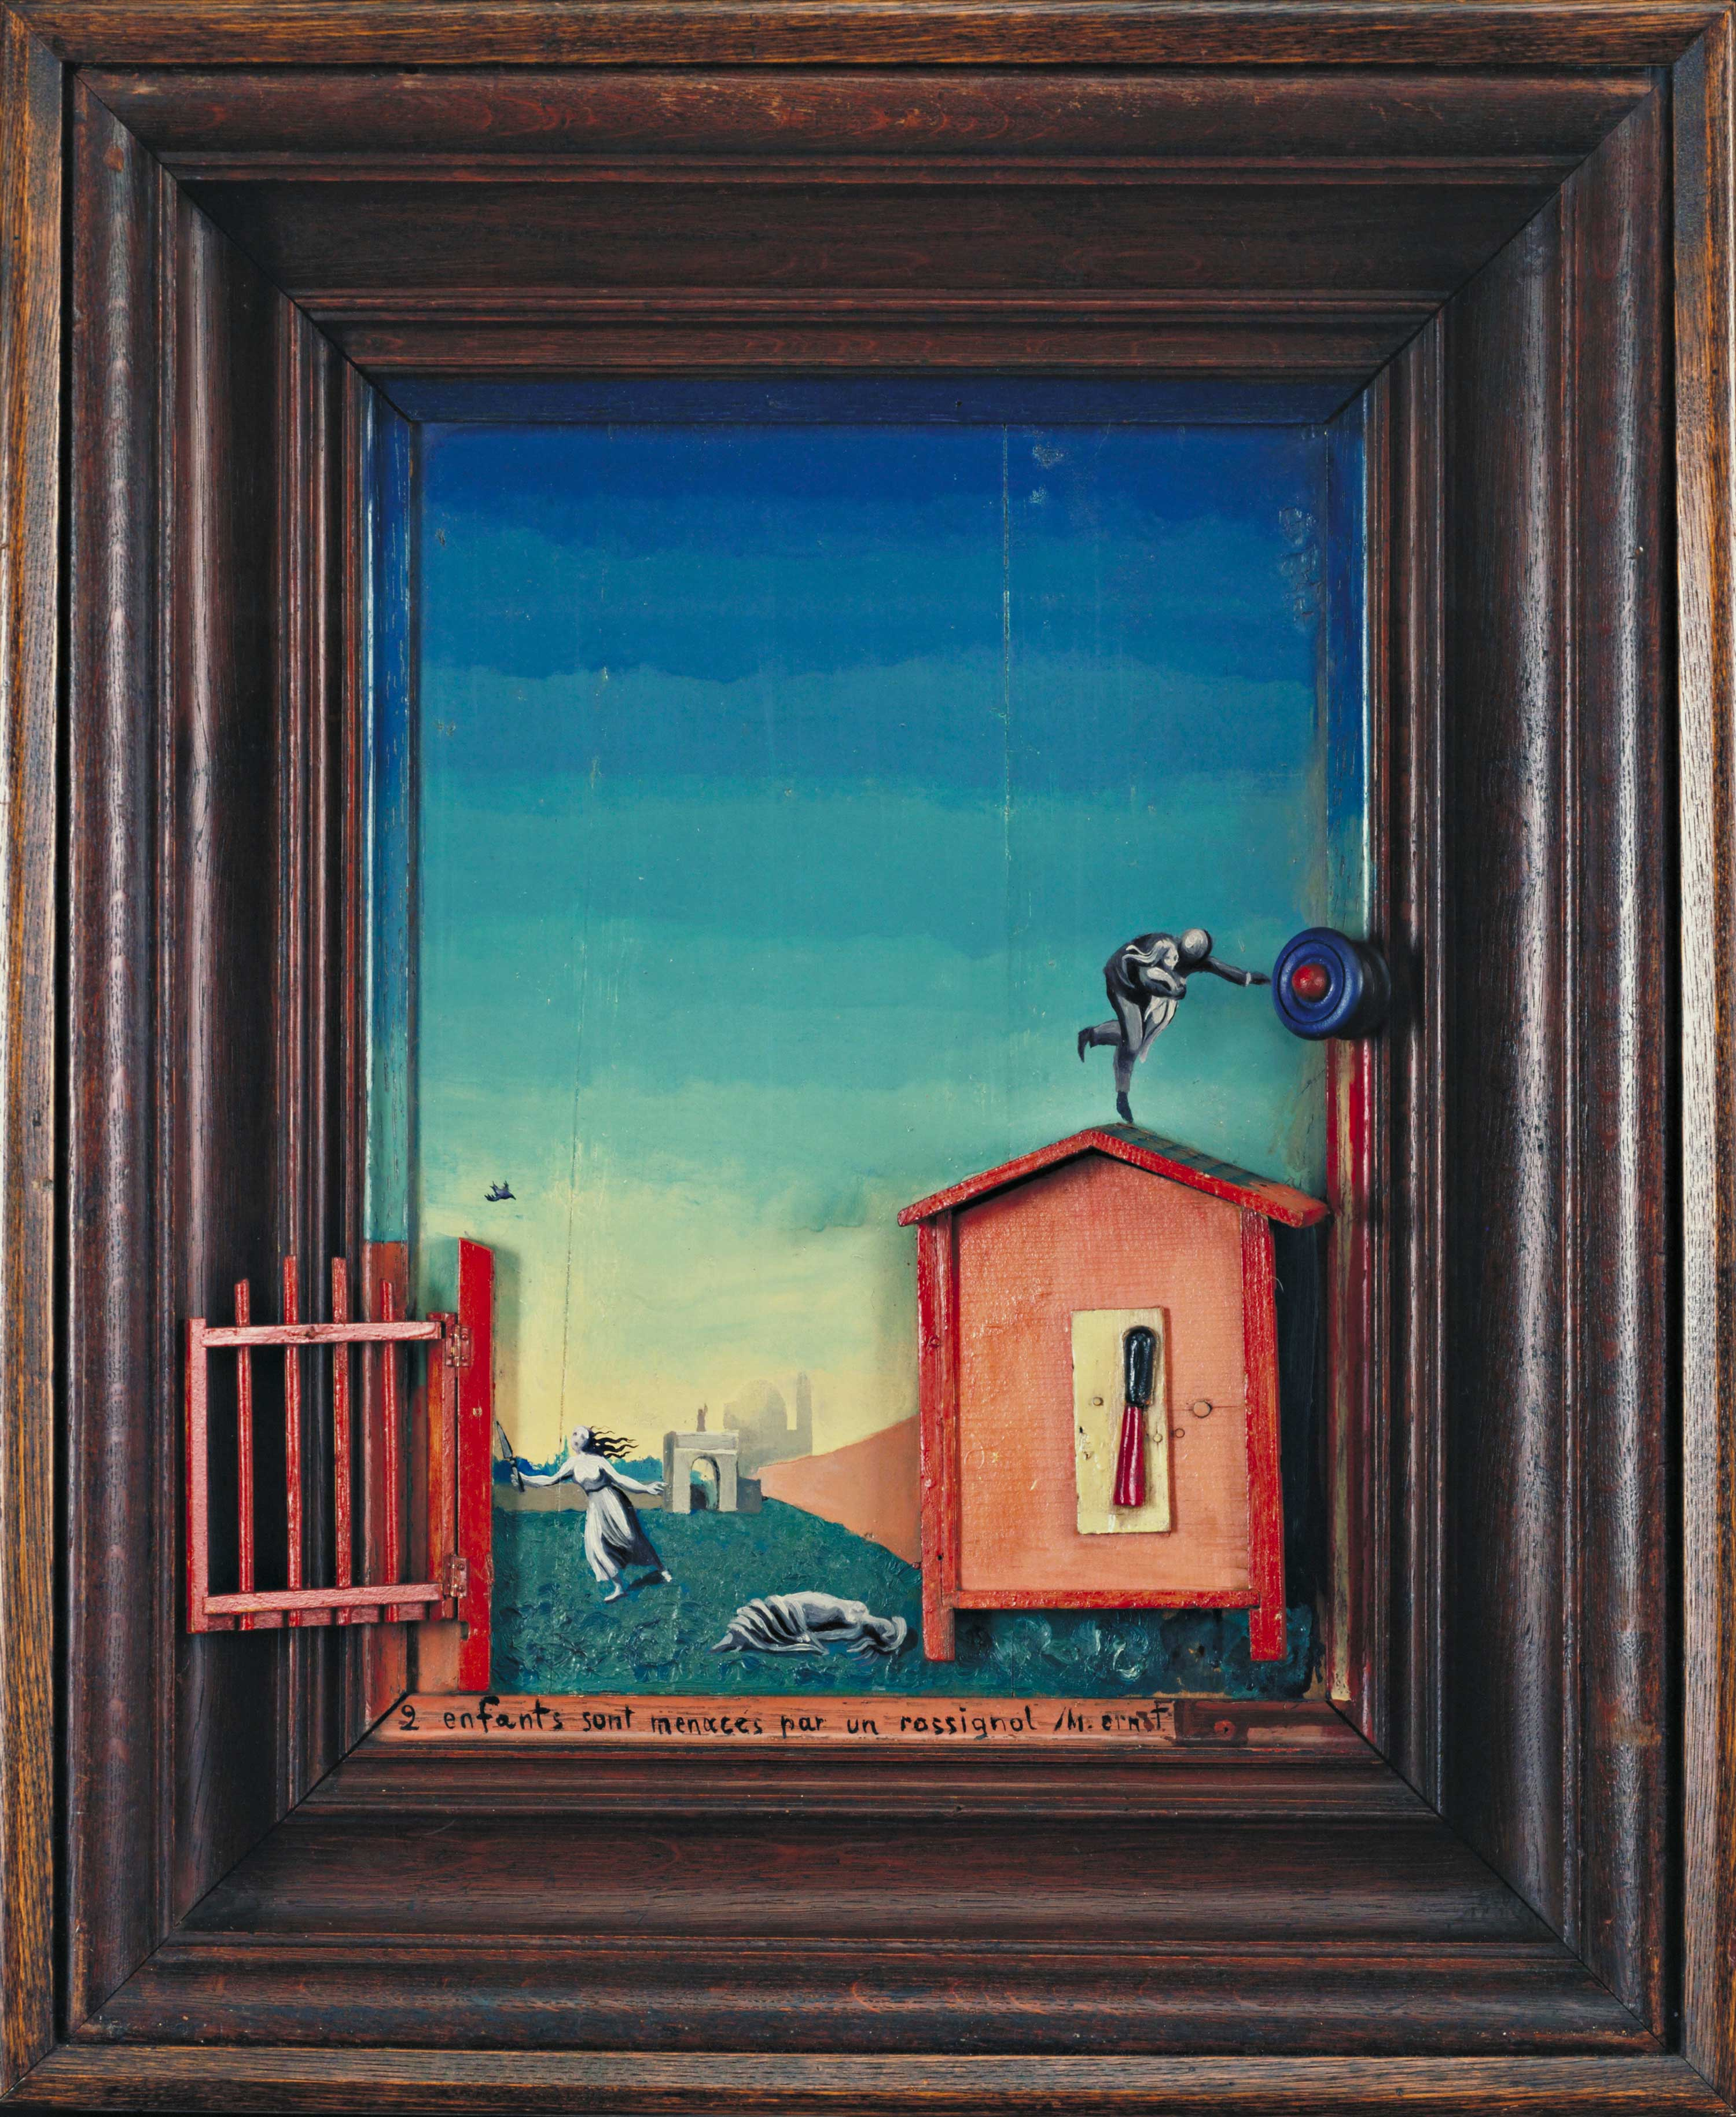 Max Ernst Show At The Moma Opens September 23 2018